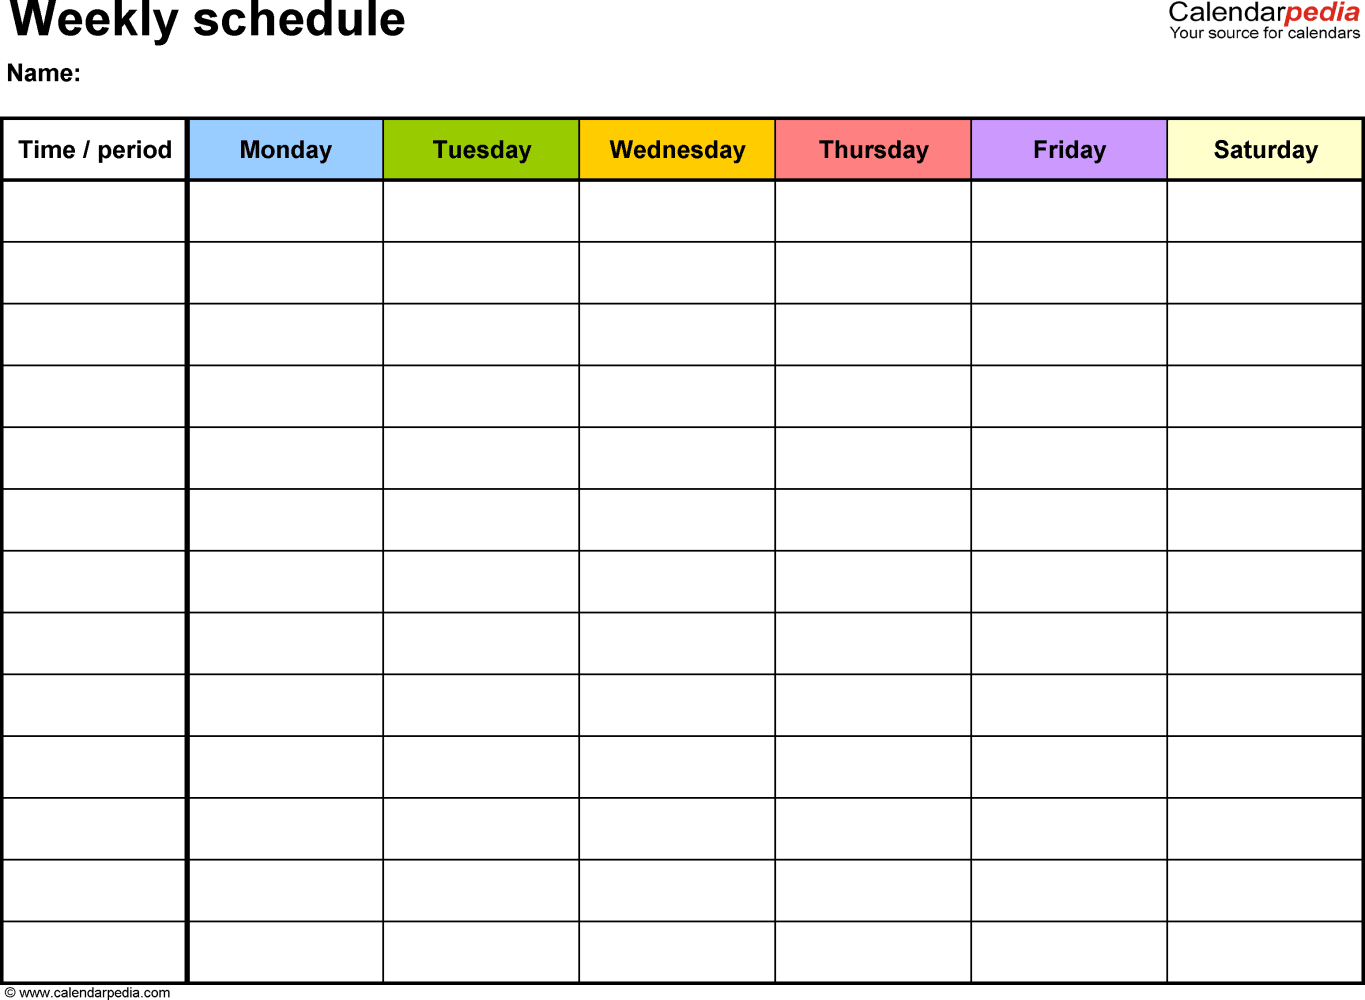 Free Weekly Schedule Templates For Excel - 18 Templates for Excel Calendar Template Weekly